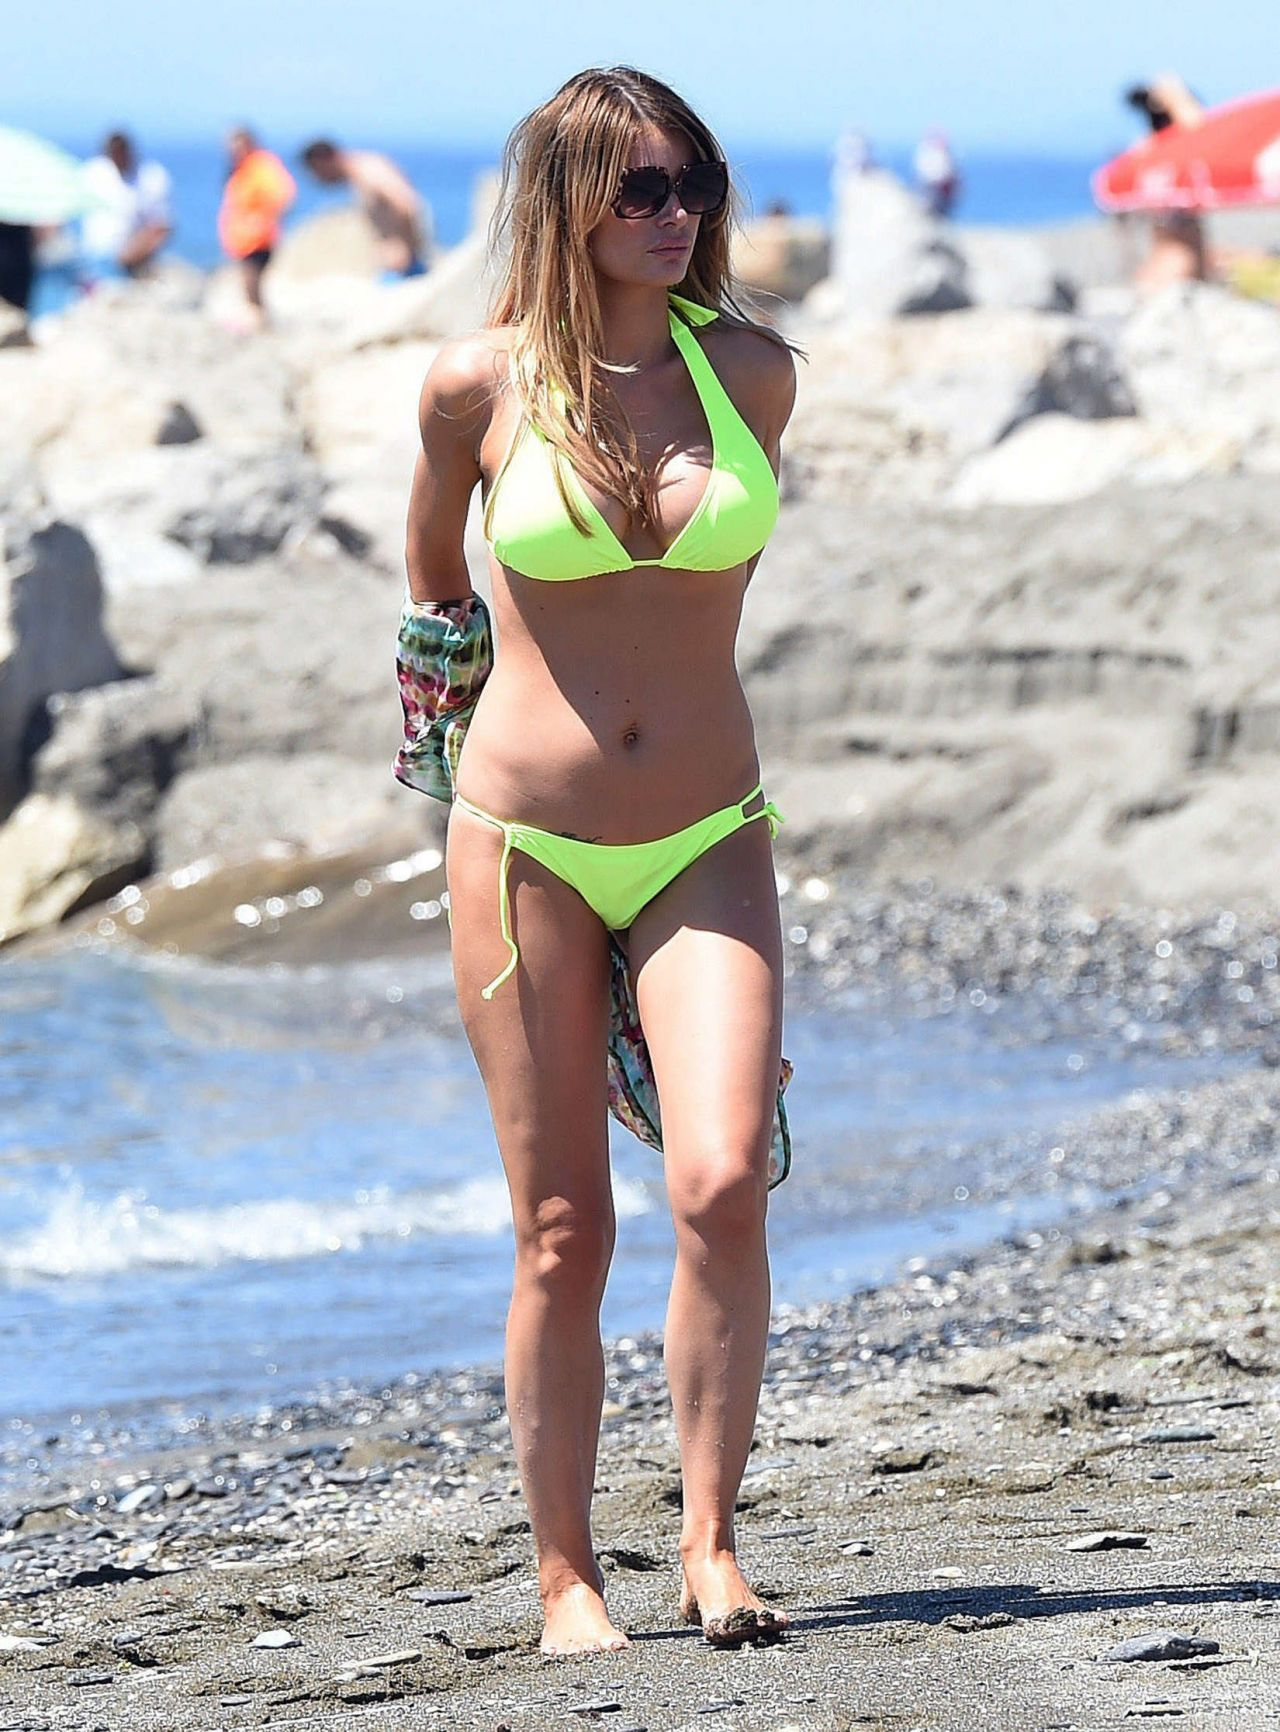 Chloe Sims in Green Bikini - Beach in Marbella, Spain - June 2014